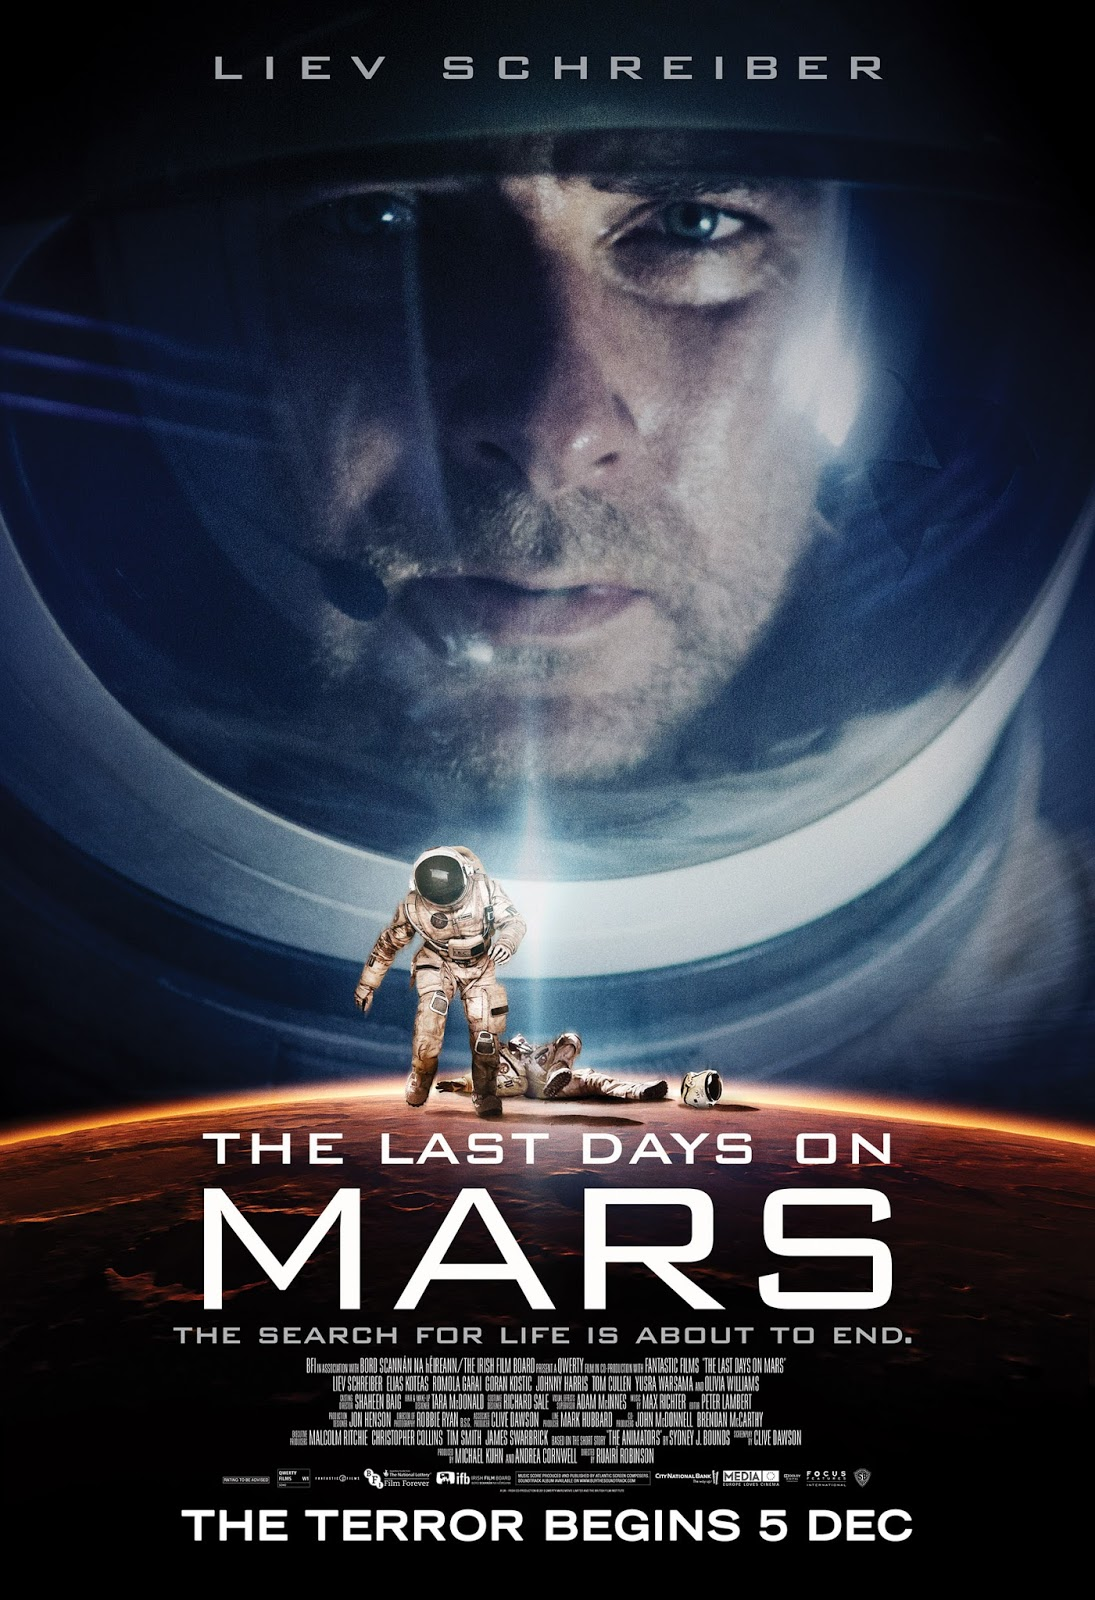 The Last Days on Mars (2013) ταινιες online seires xrysoi greek subs